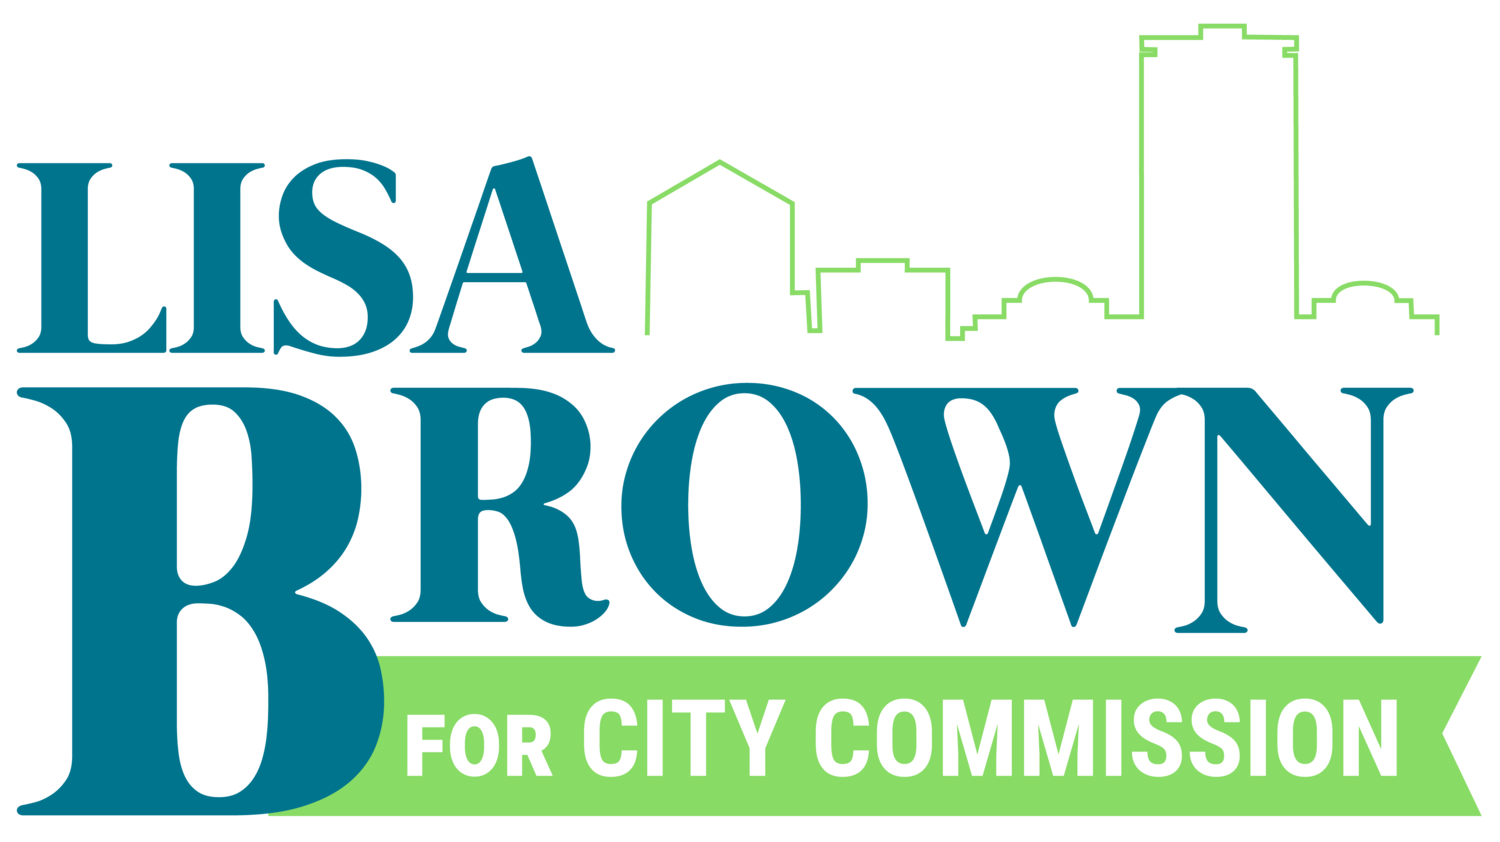 Lisa Brown for Tallahassee City Commission